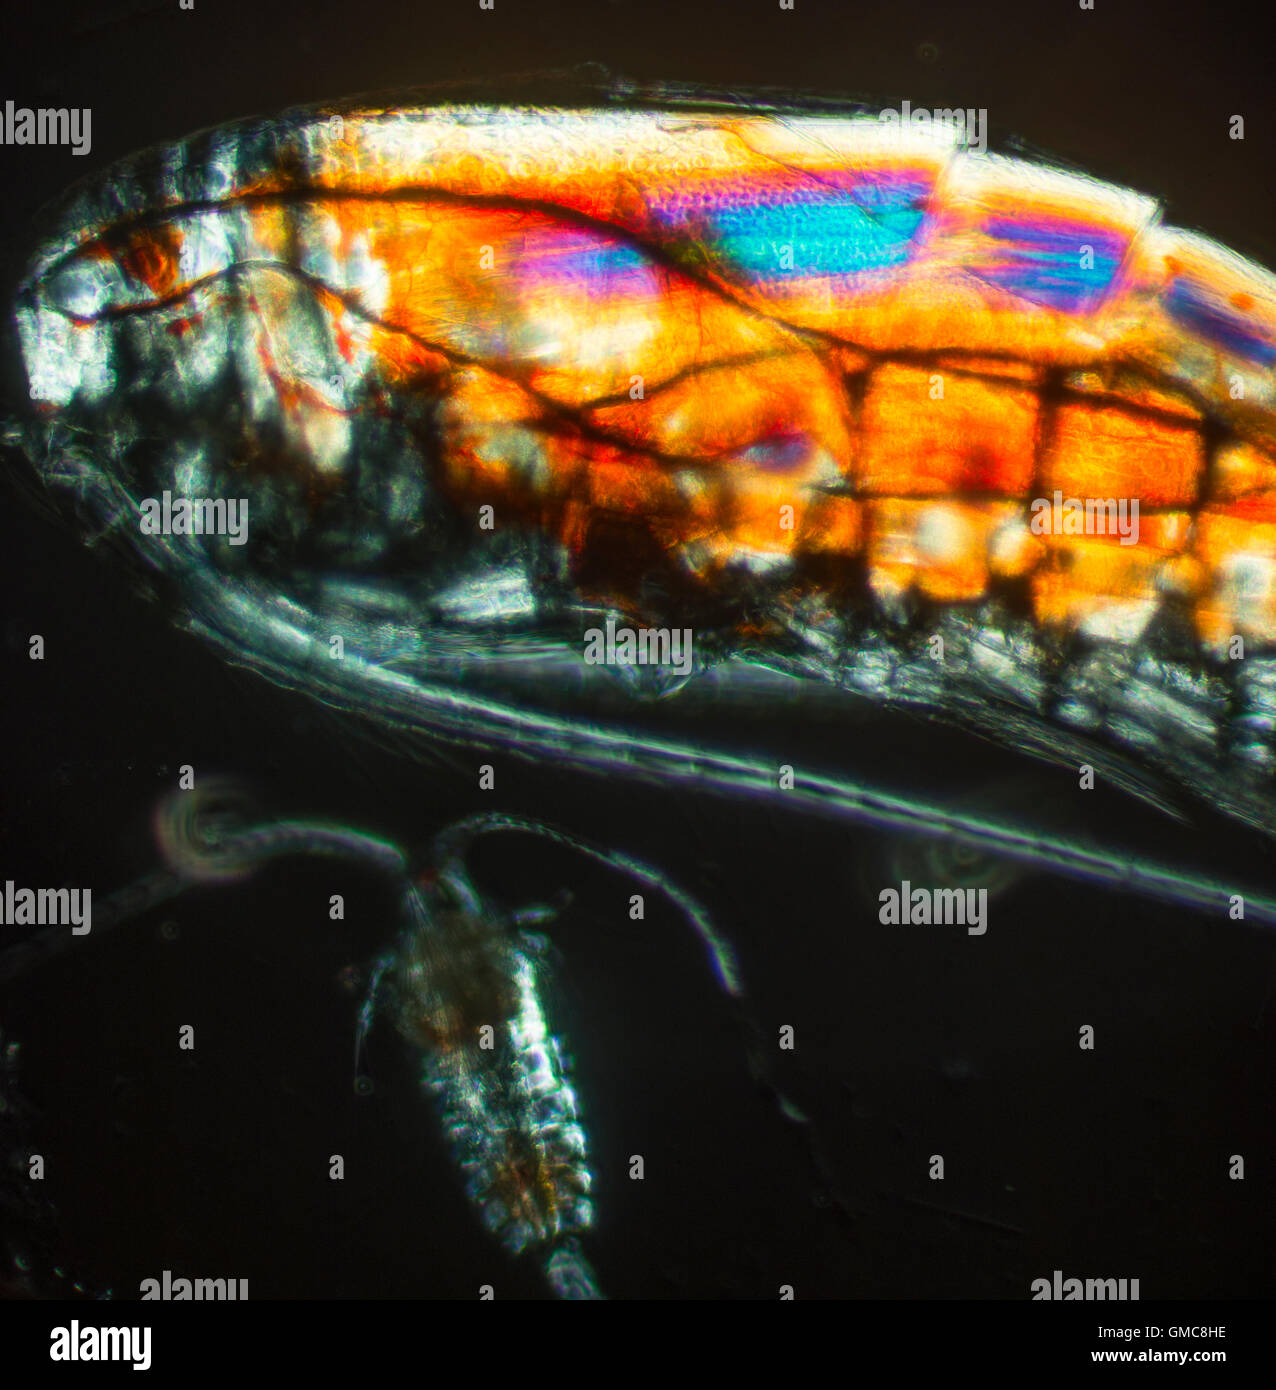 micrp sea animals from the Atlantic, Copepods (/ˈkoʊpɪpɒd/; meaning 'oar-feet') are a group of small crustaceans - Stock Image